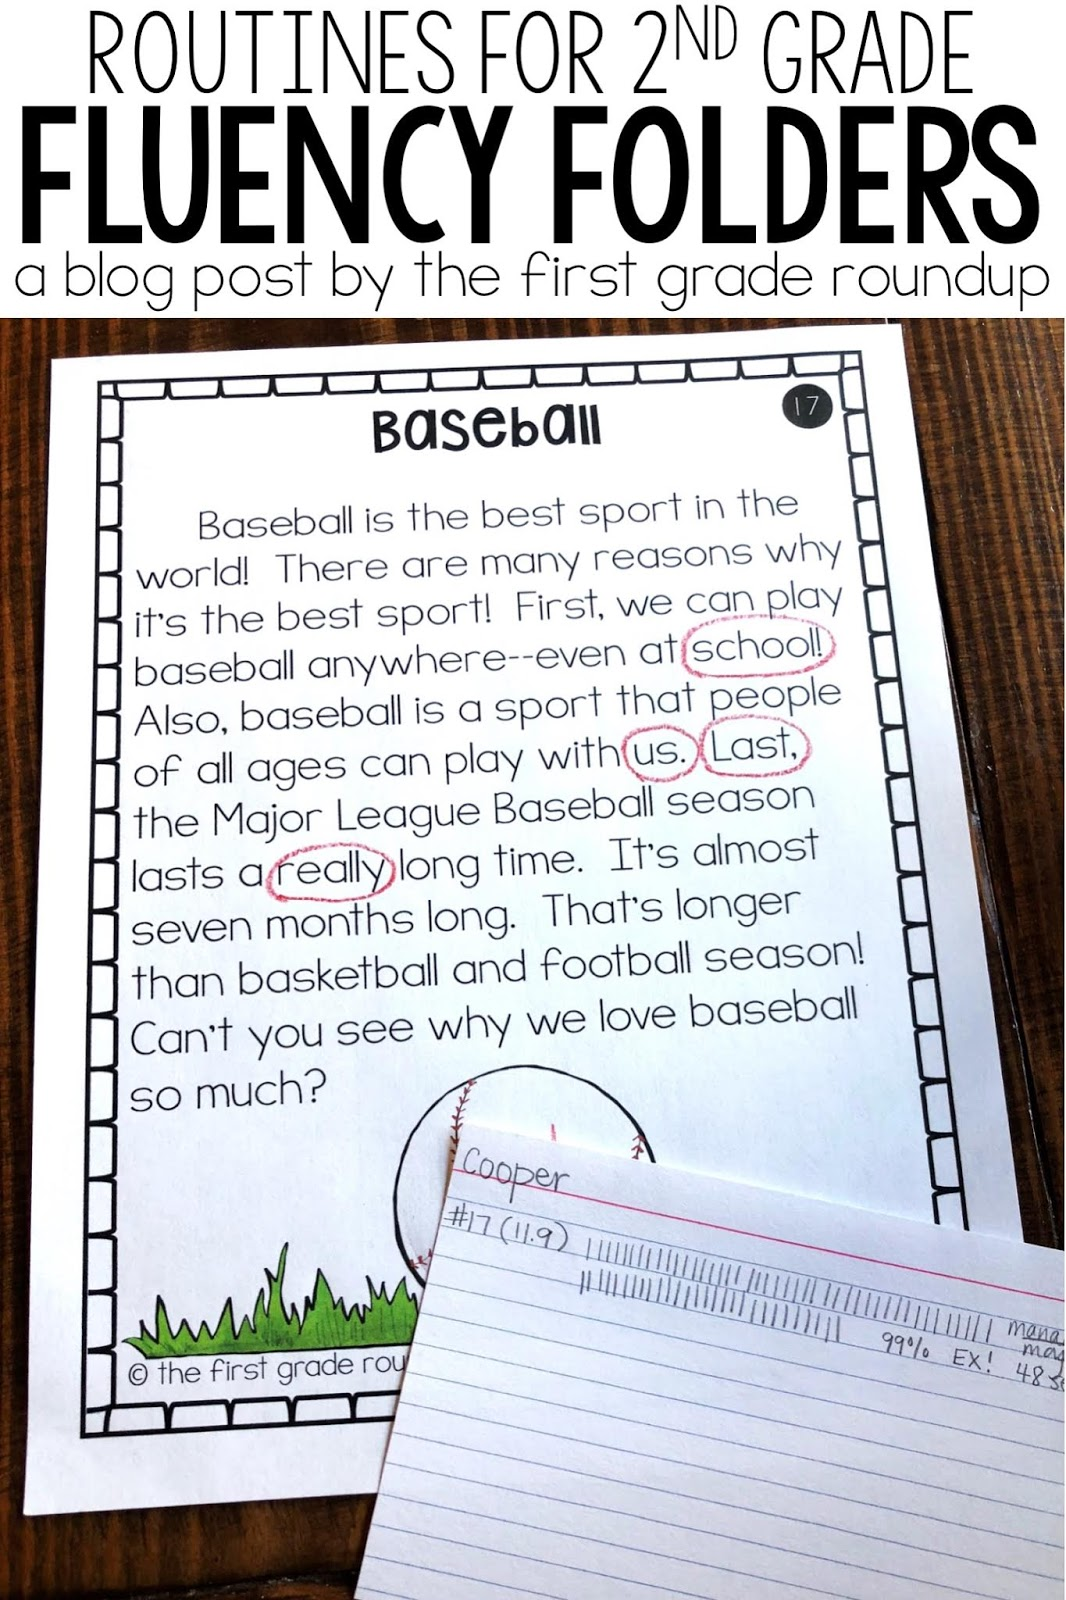 hight resolution of Fluency Folder Routines for Second Graders - Firstgraderoundup